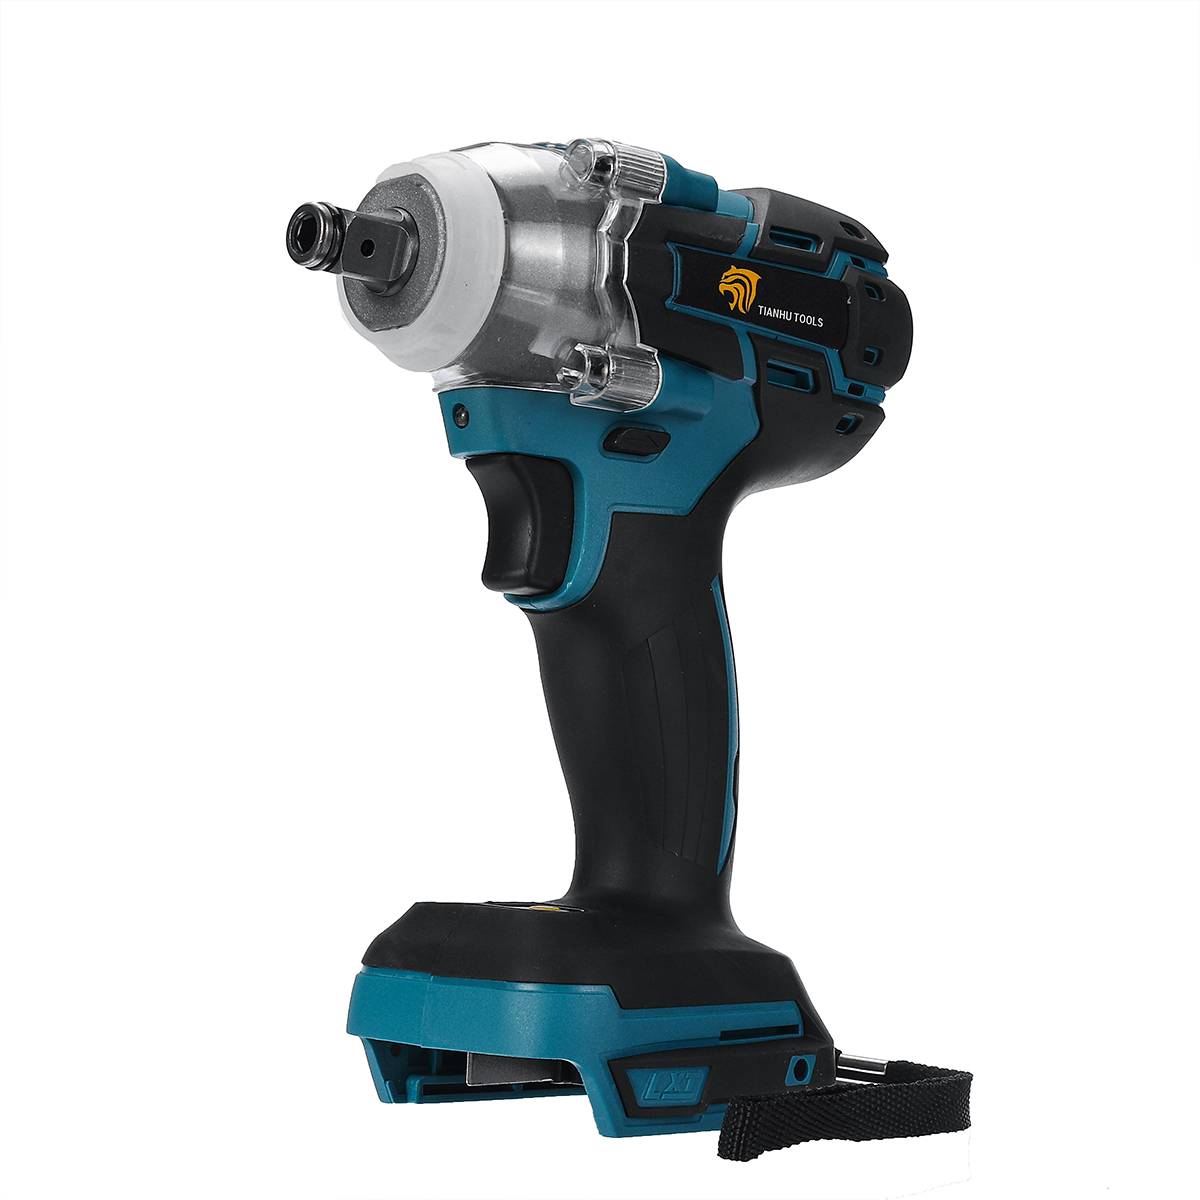 18V 520Nm Electric Rechargeable Brushless Impact Wrench Cordless 1/2 Socket Wrench Power Tool Without Battery